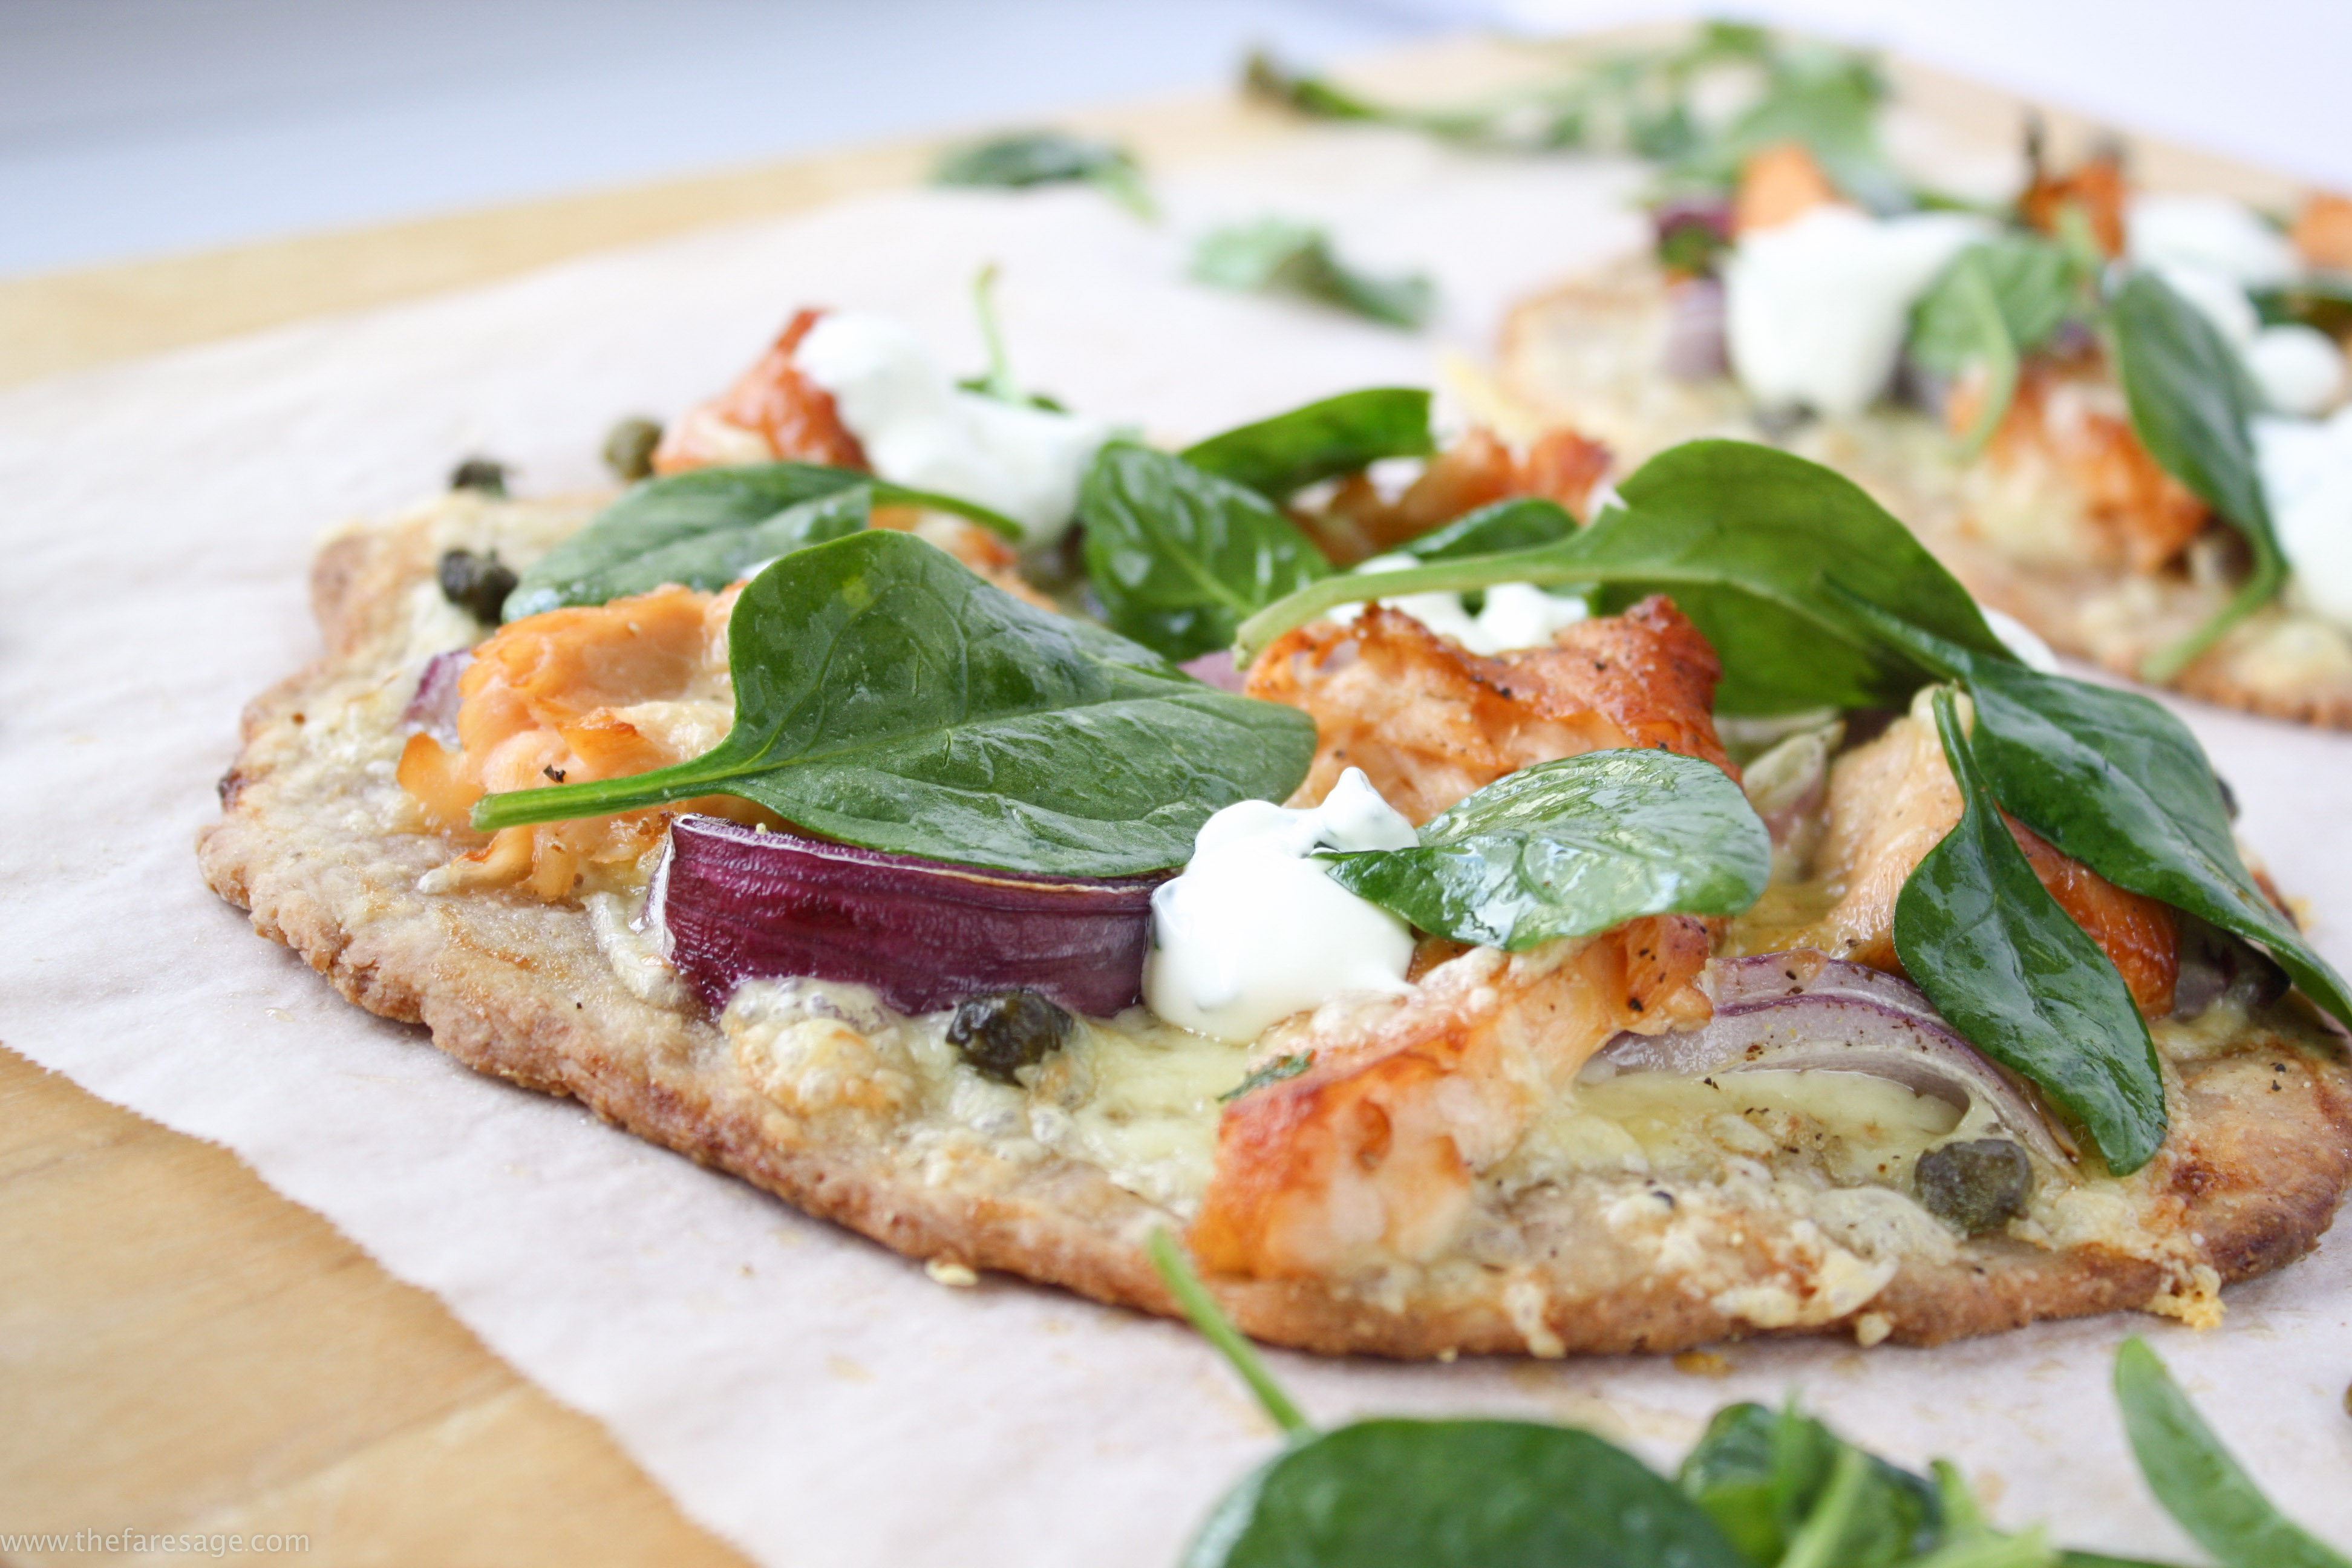 Engaging Flatbread Smoked Salmon Smoked Salmon Capers Capers Capers Flatbread Capers Fare Sage Salmon Rosemary Foil Salmon nice food Salmon With Capers